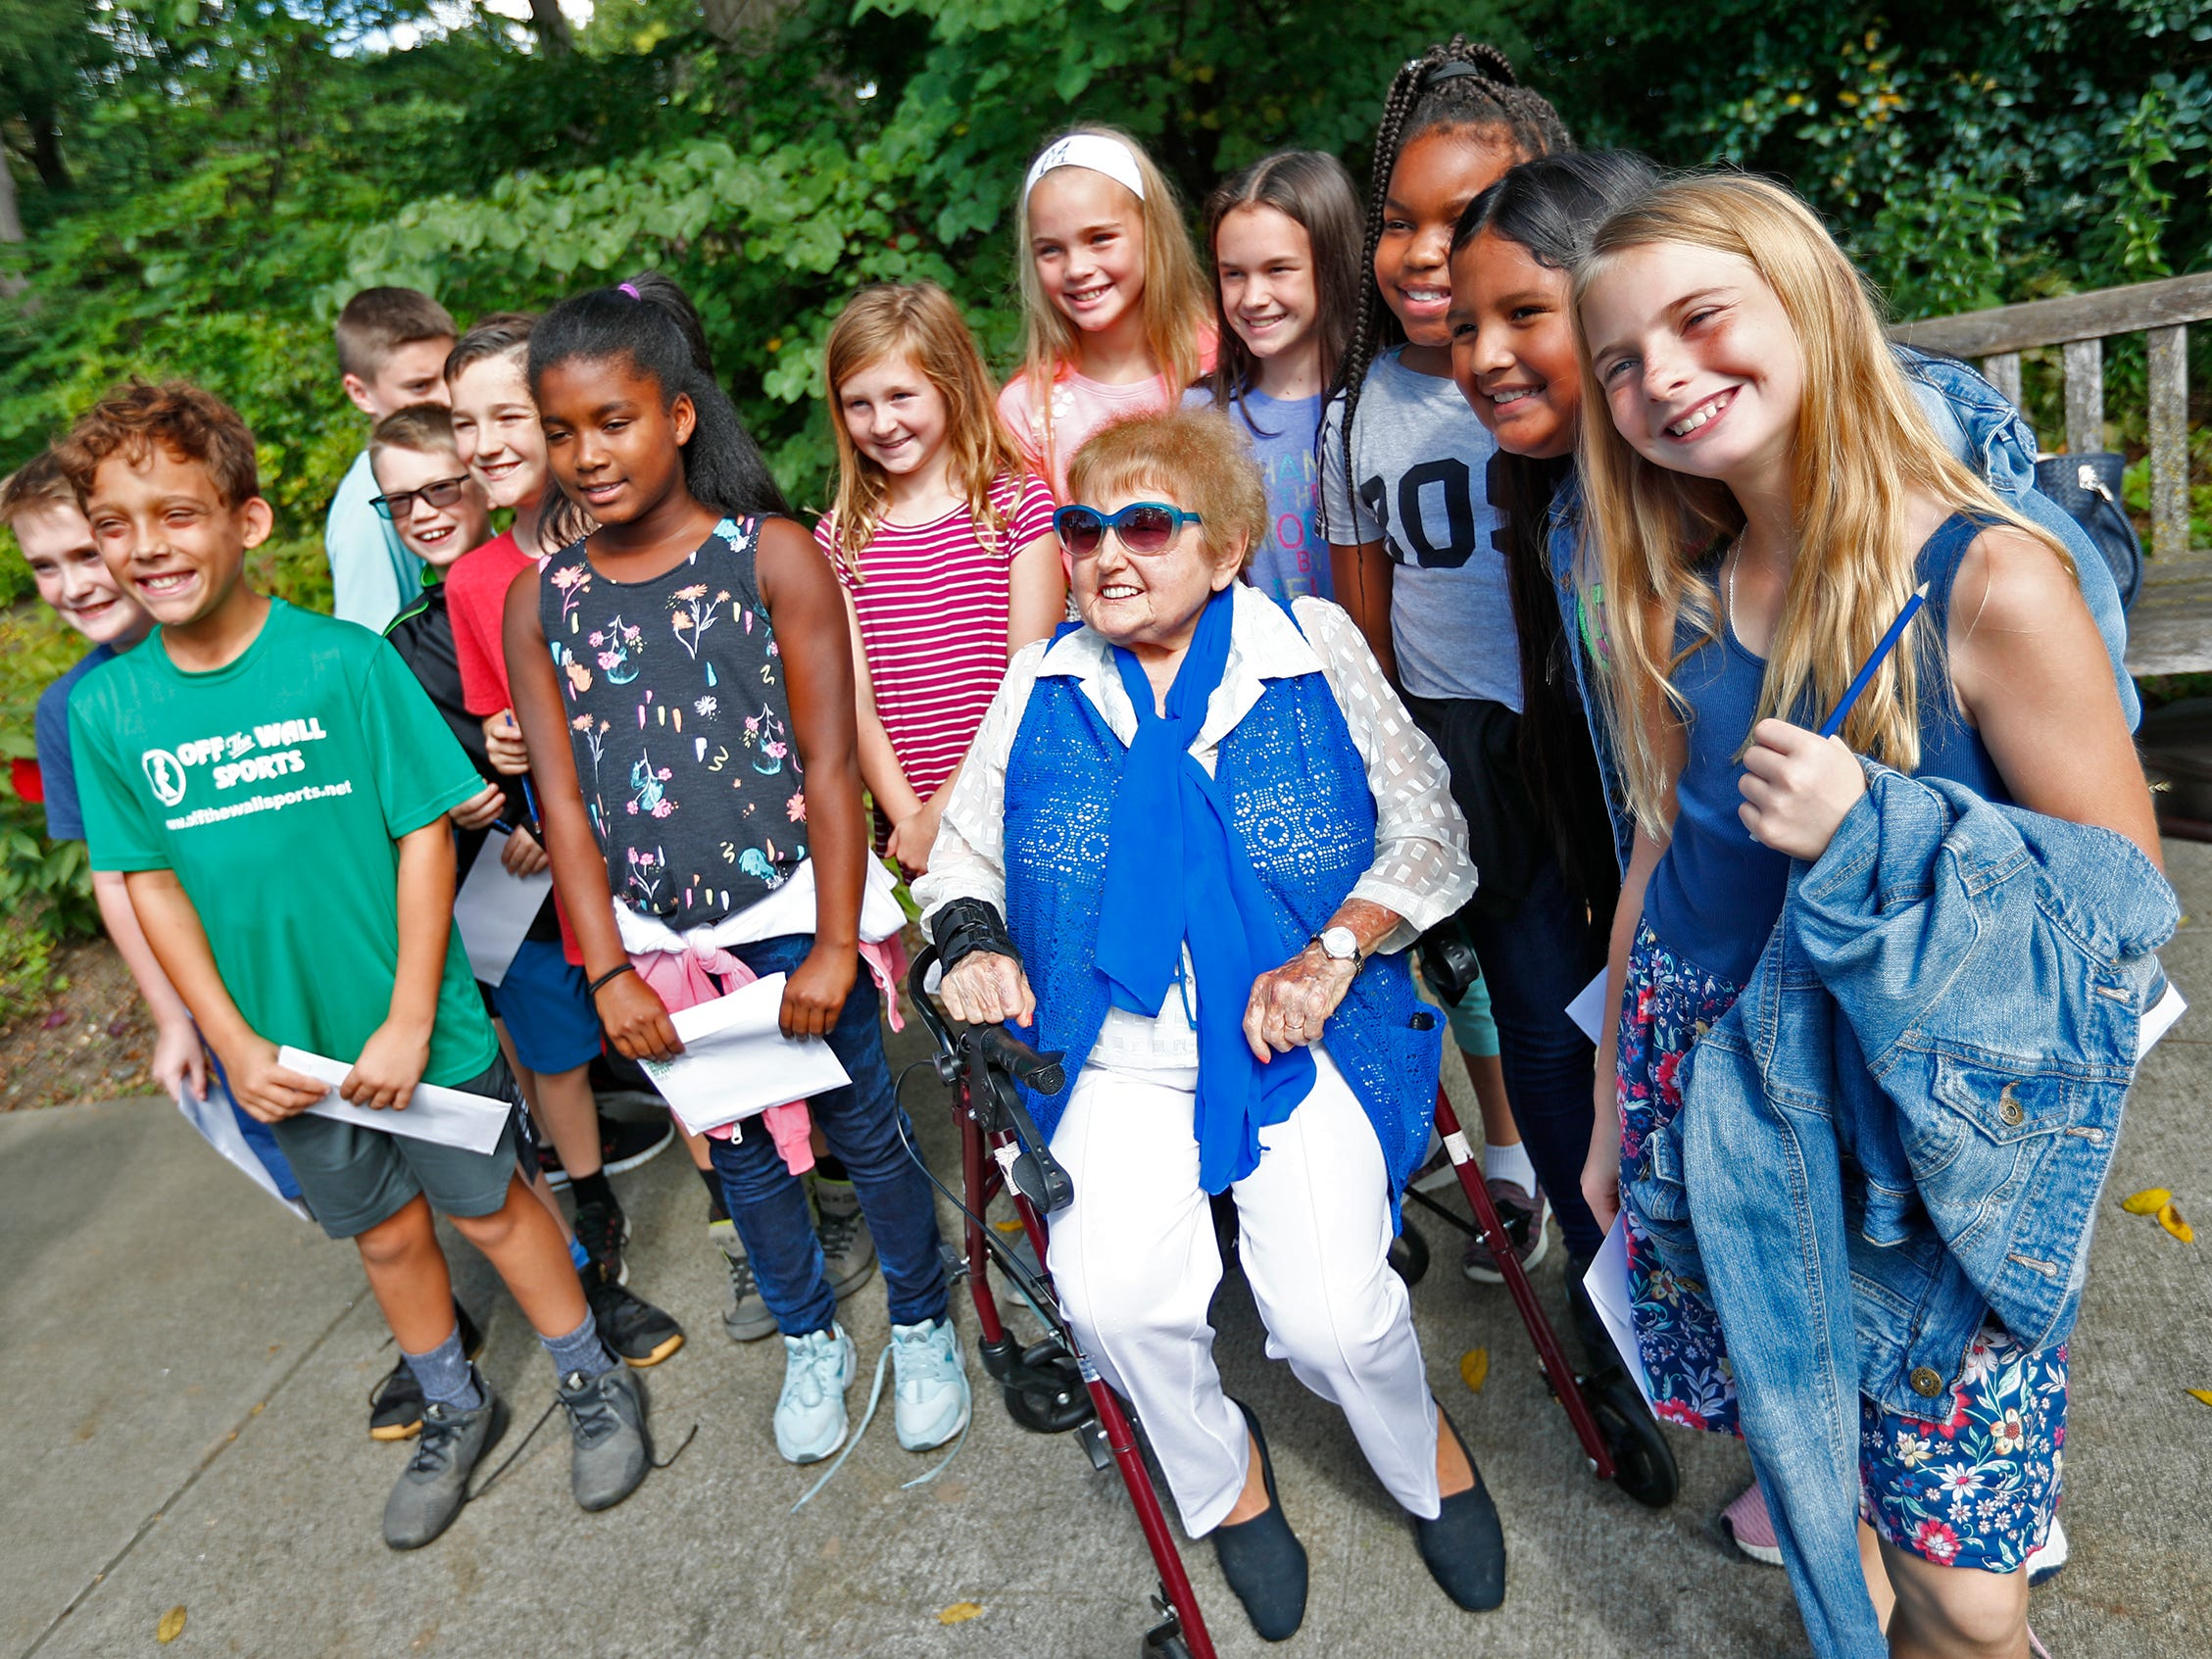 """Holocaust survivor Eva Kor, center, poses for photos with students from Allisonville Elementary School, during the planting of the Eva Kor Peace Garden at Newfields, Monday, Sept. 17, 2018.  Students viewed the documentary """"Eva,"""" about Kor, and then helped in the planting of the Peace Garden.  Kor also spoke with the students, asking them to think of one thing to make the world better."""